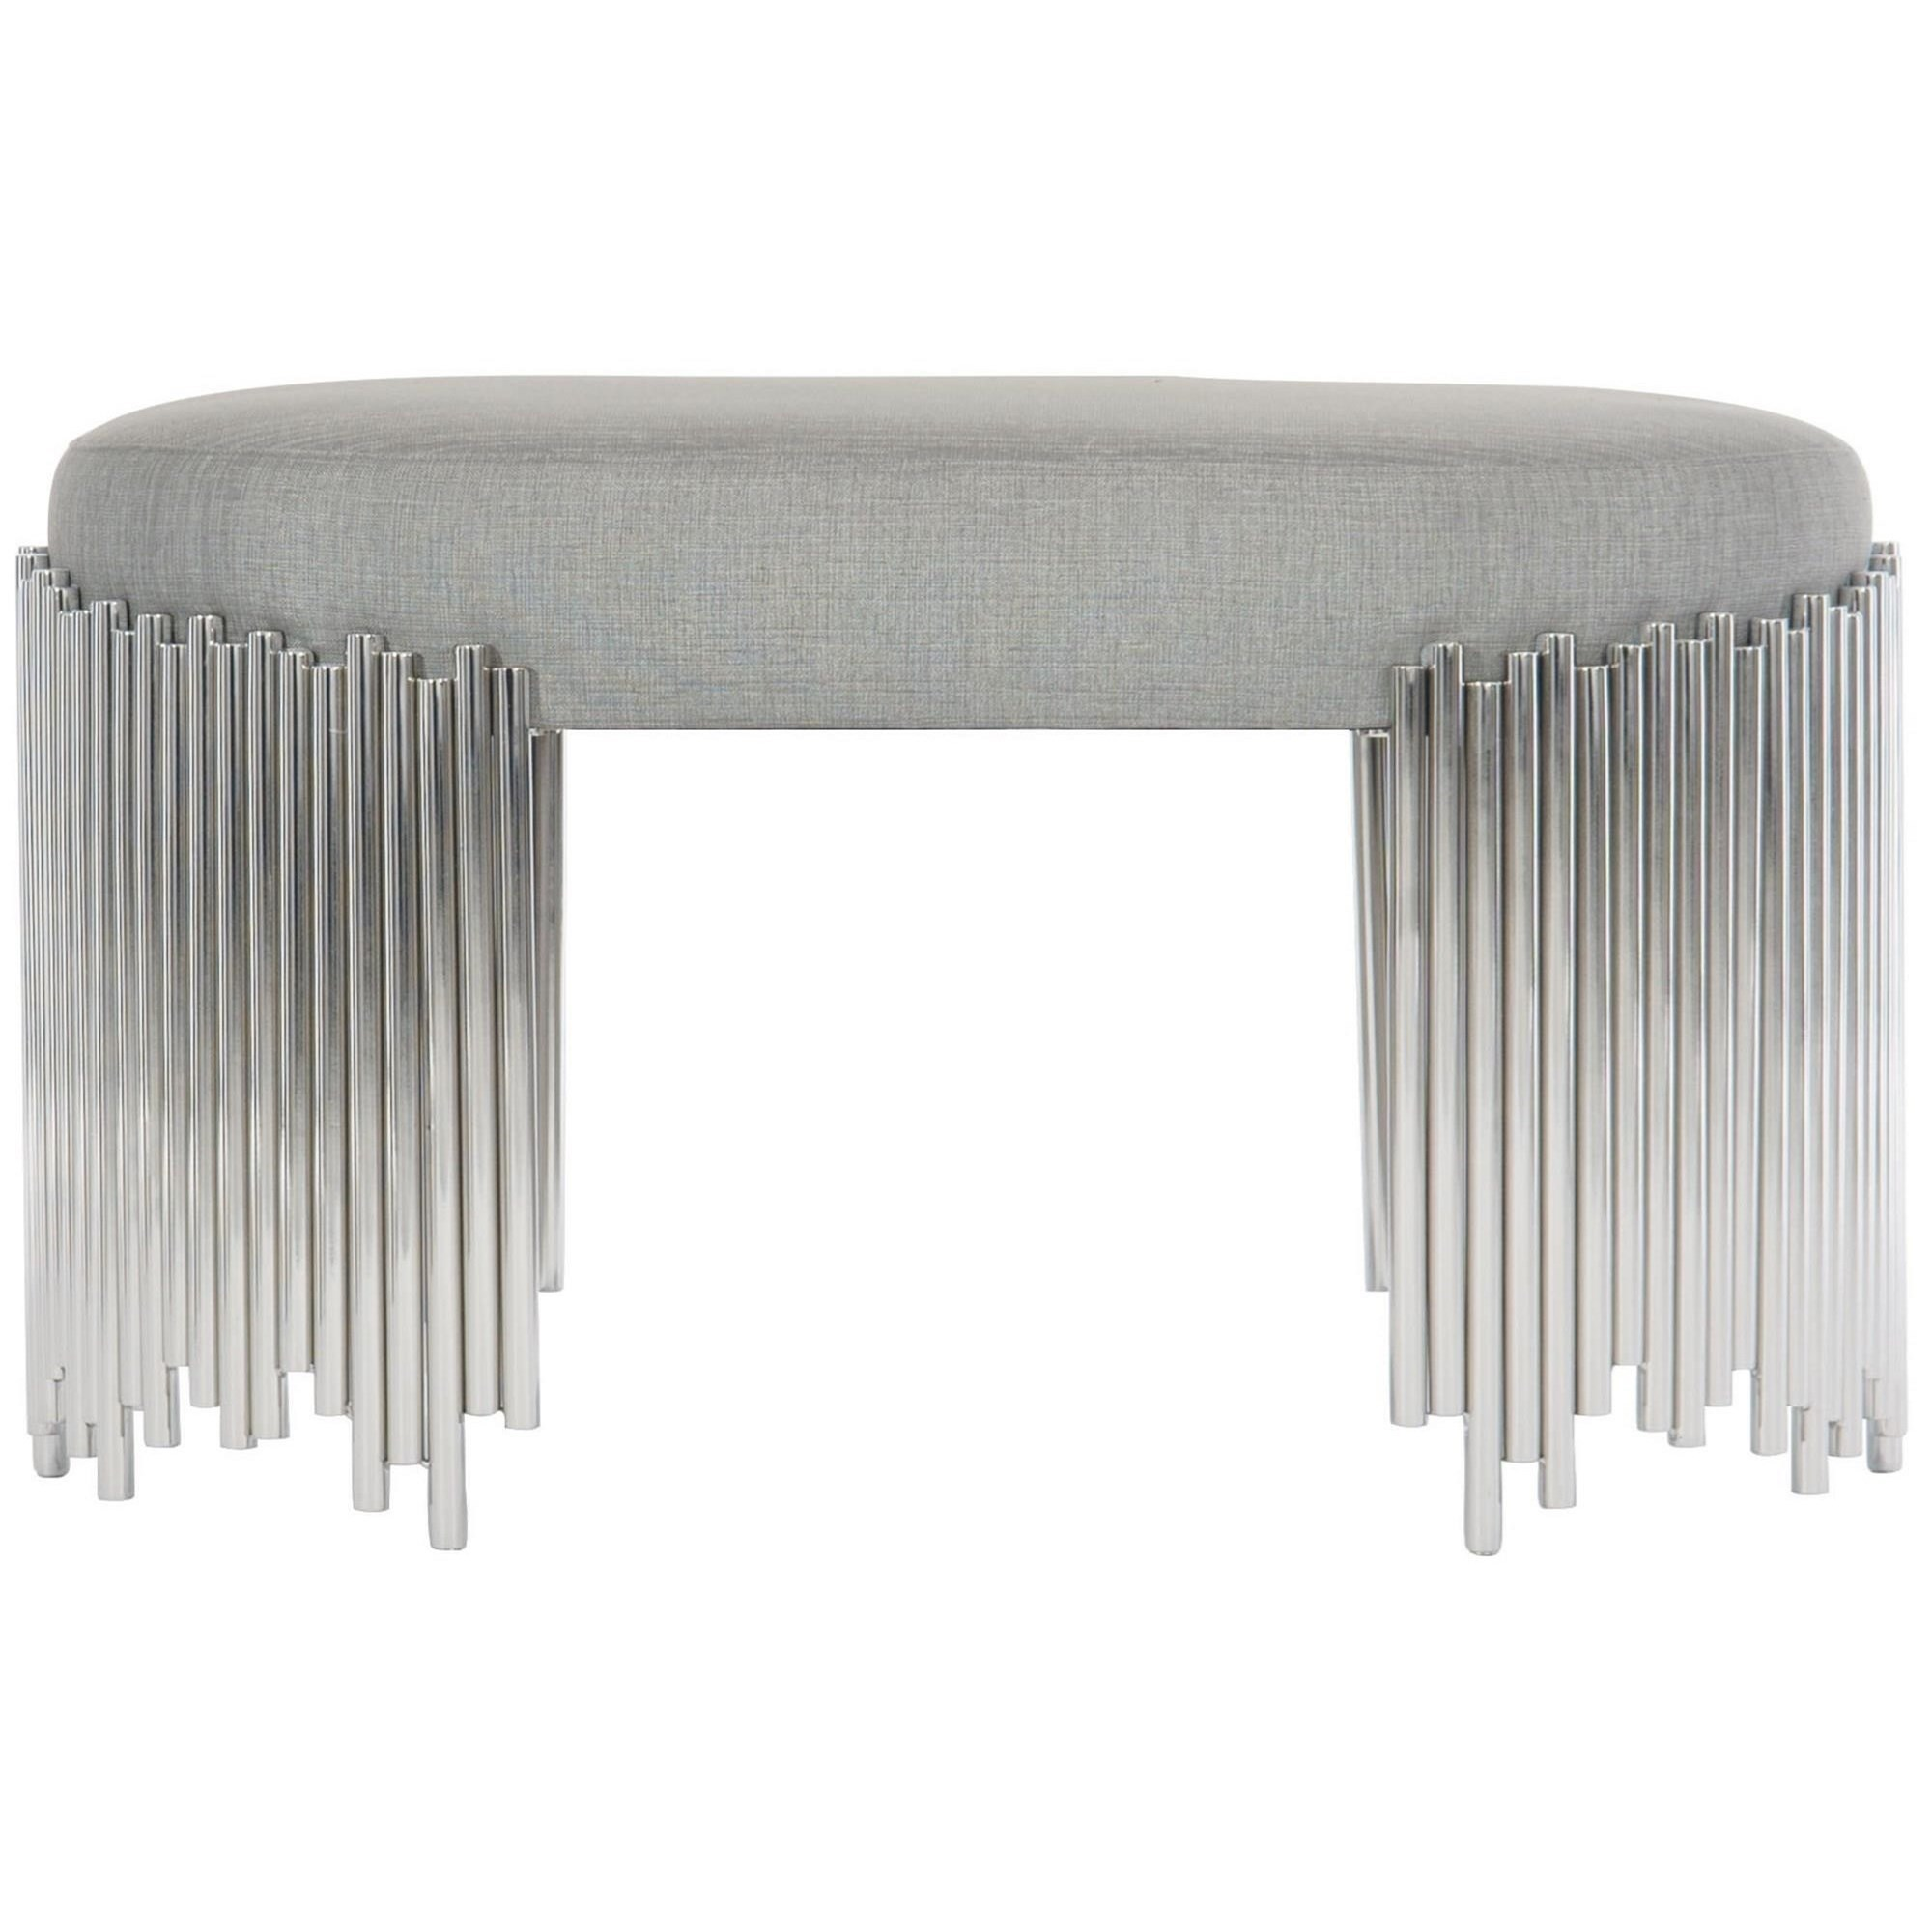 Transitional Oval Upholstered Bench with Customizable Fabric